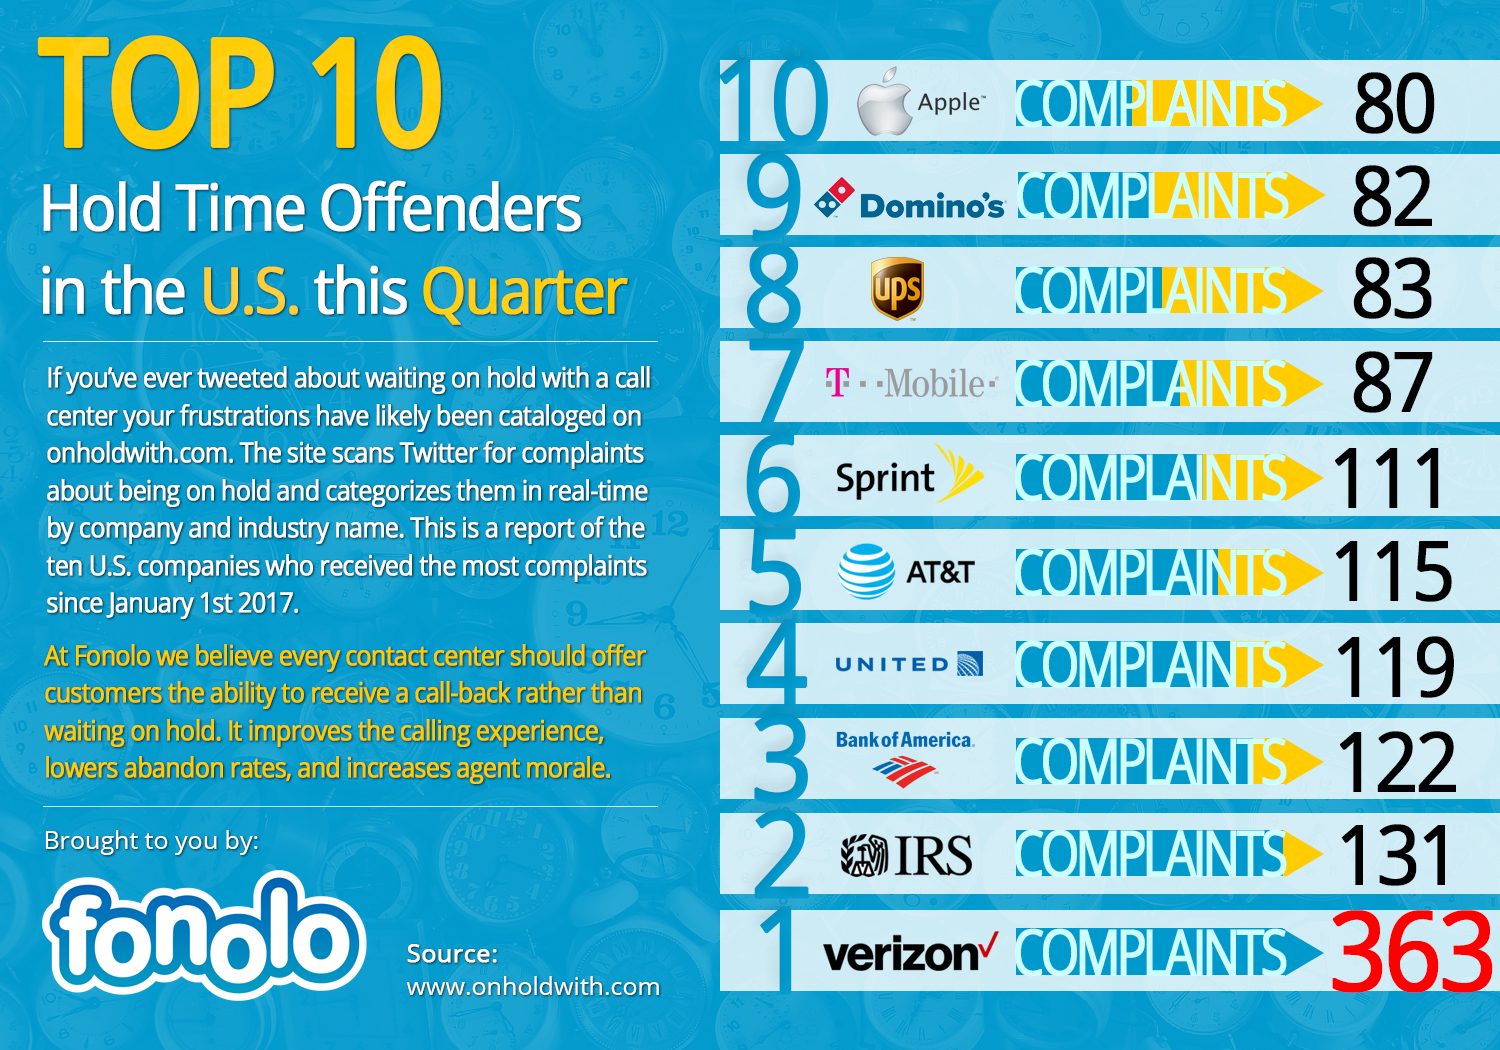 Winter Blues Top 10 Hold Time Offenders this Quarter